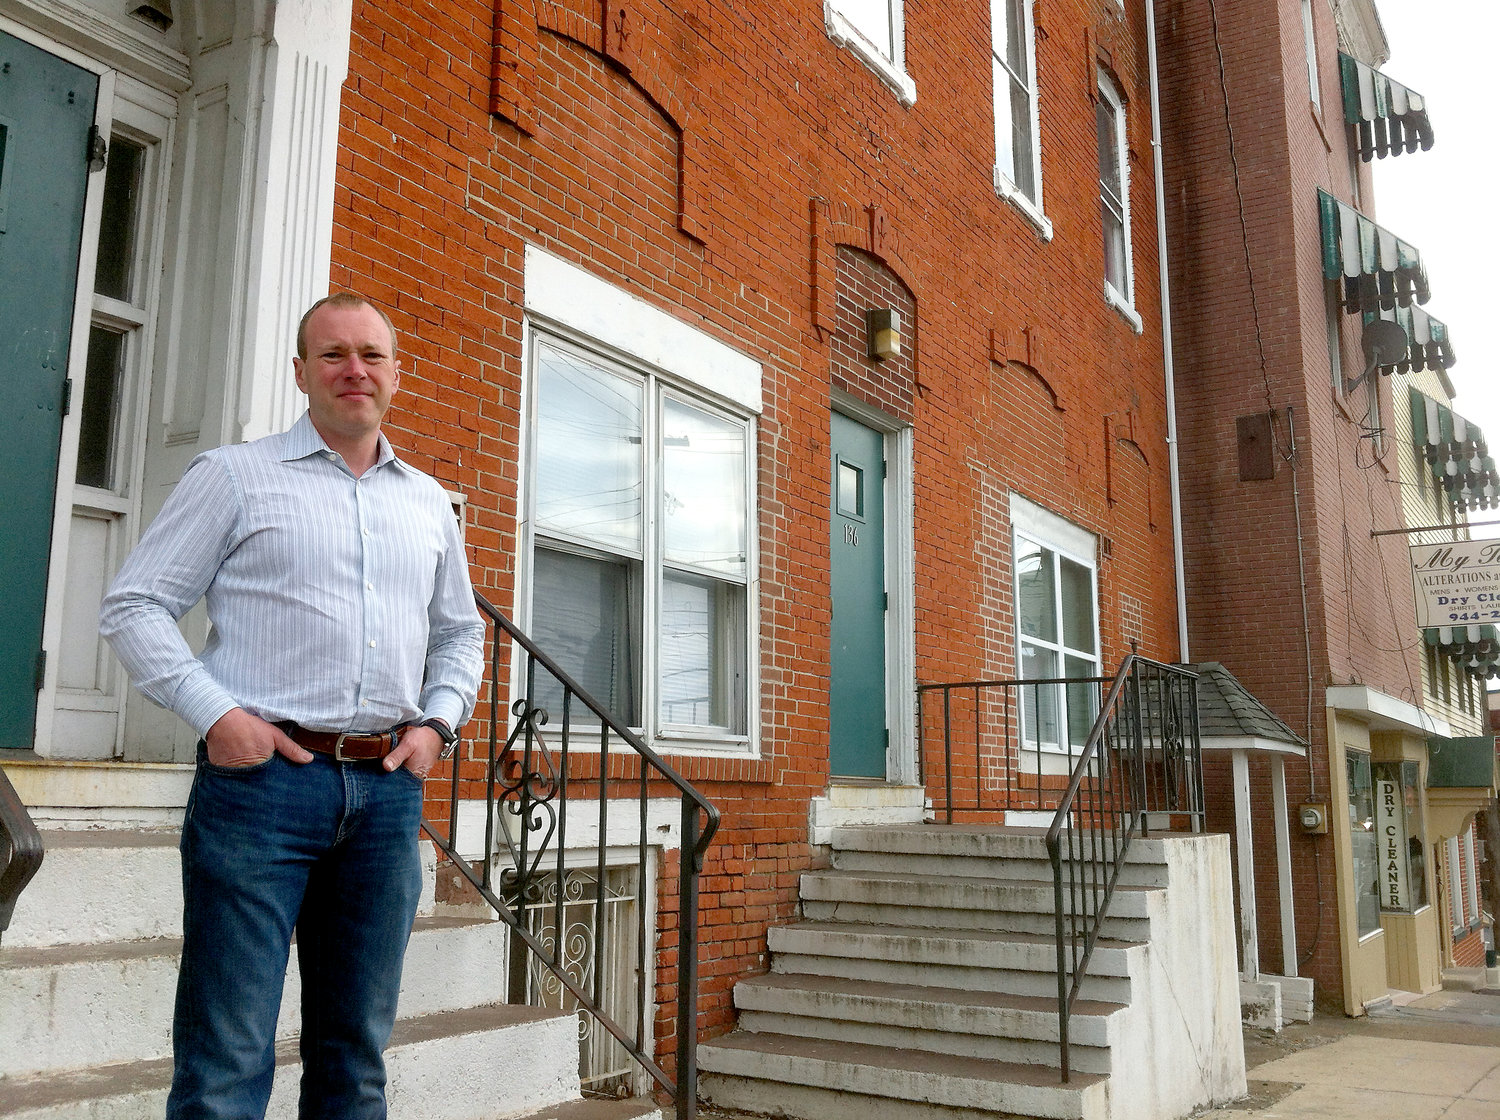 In this March 2015 file photo, George Crist stands in front of the building in the 100 block of South Union Street that he bought in 2014.